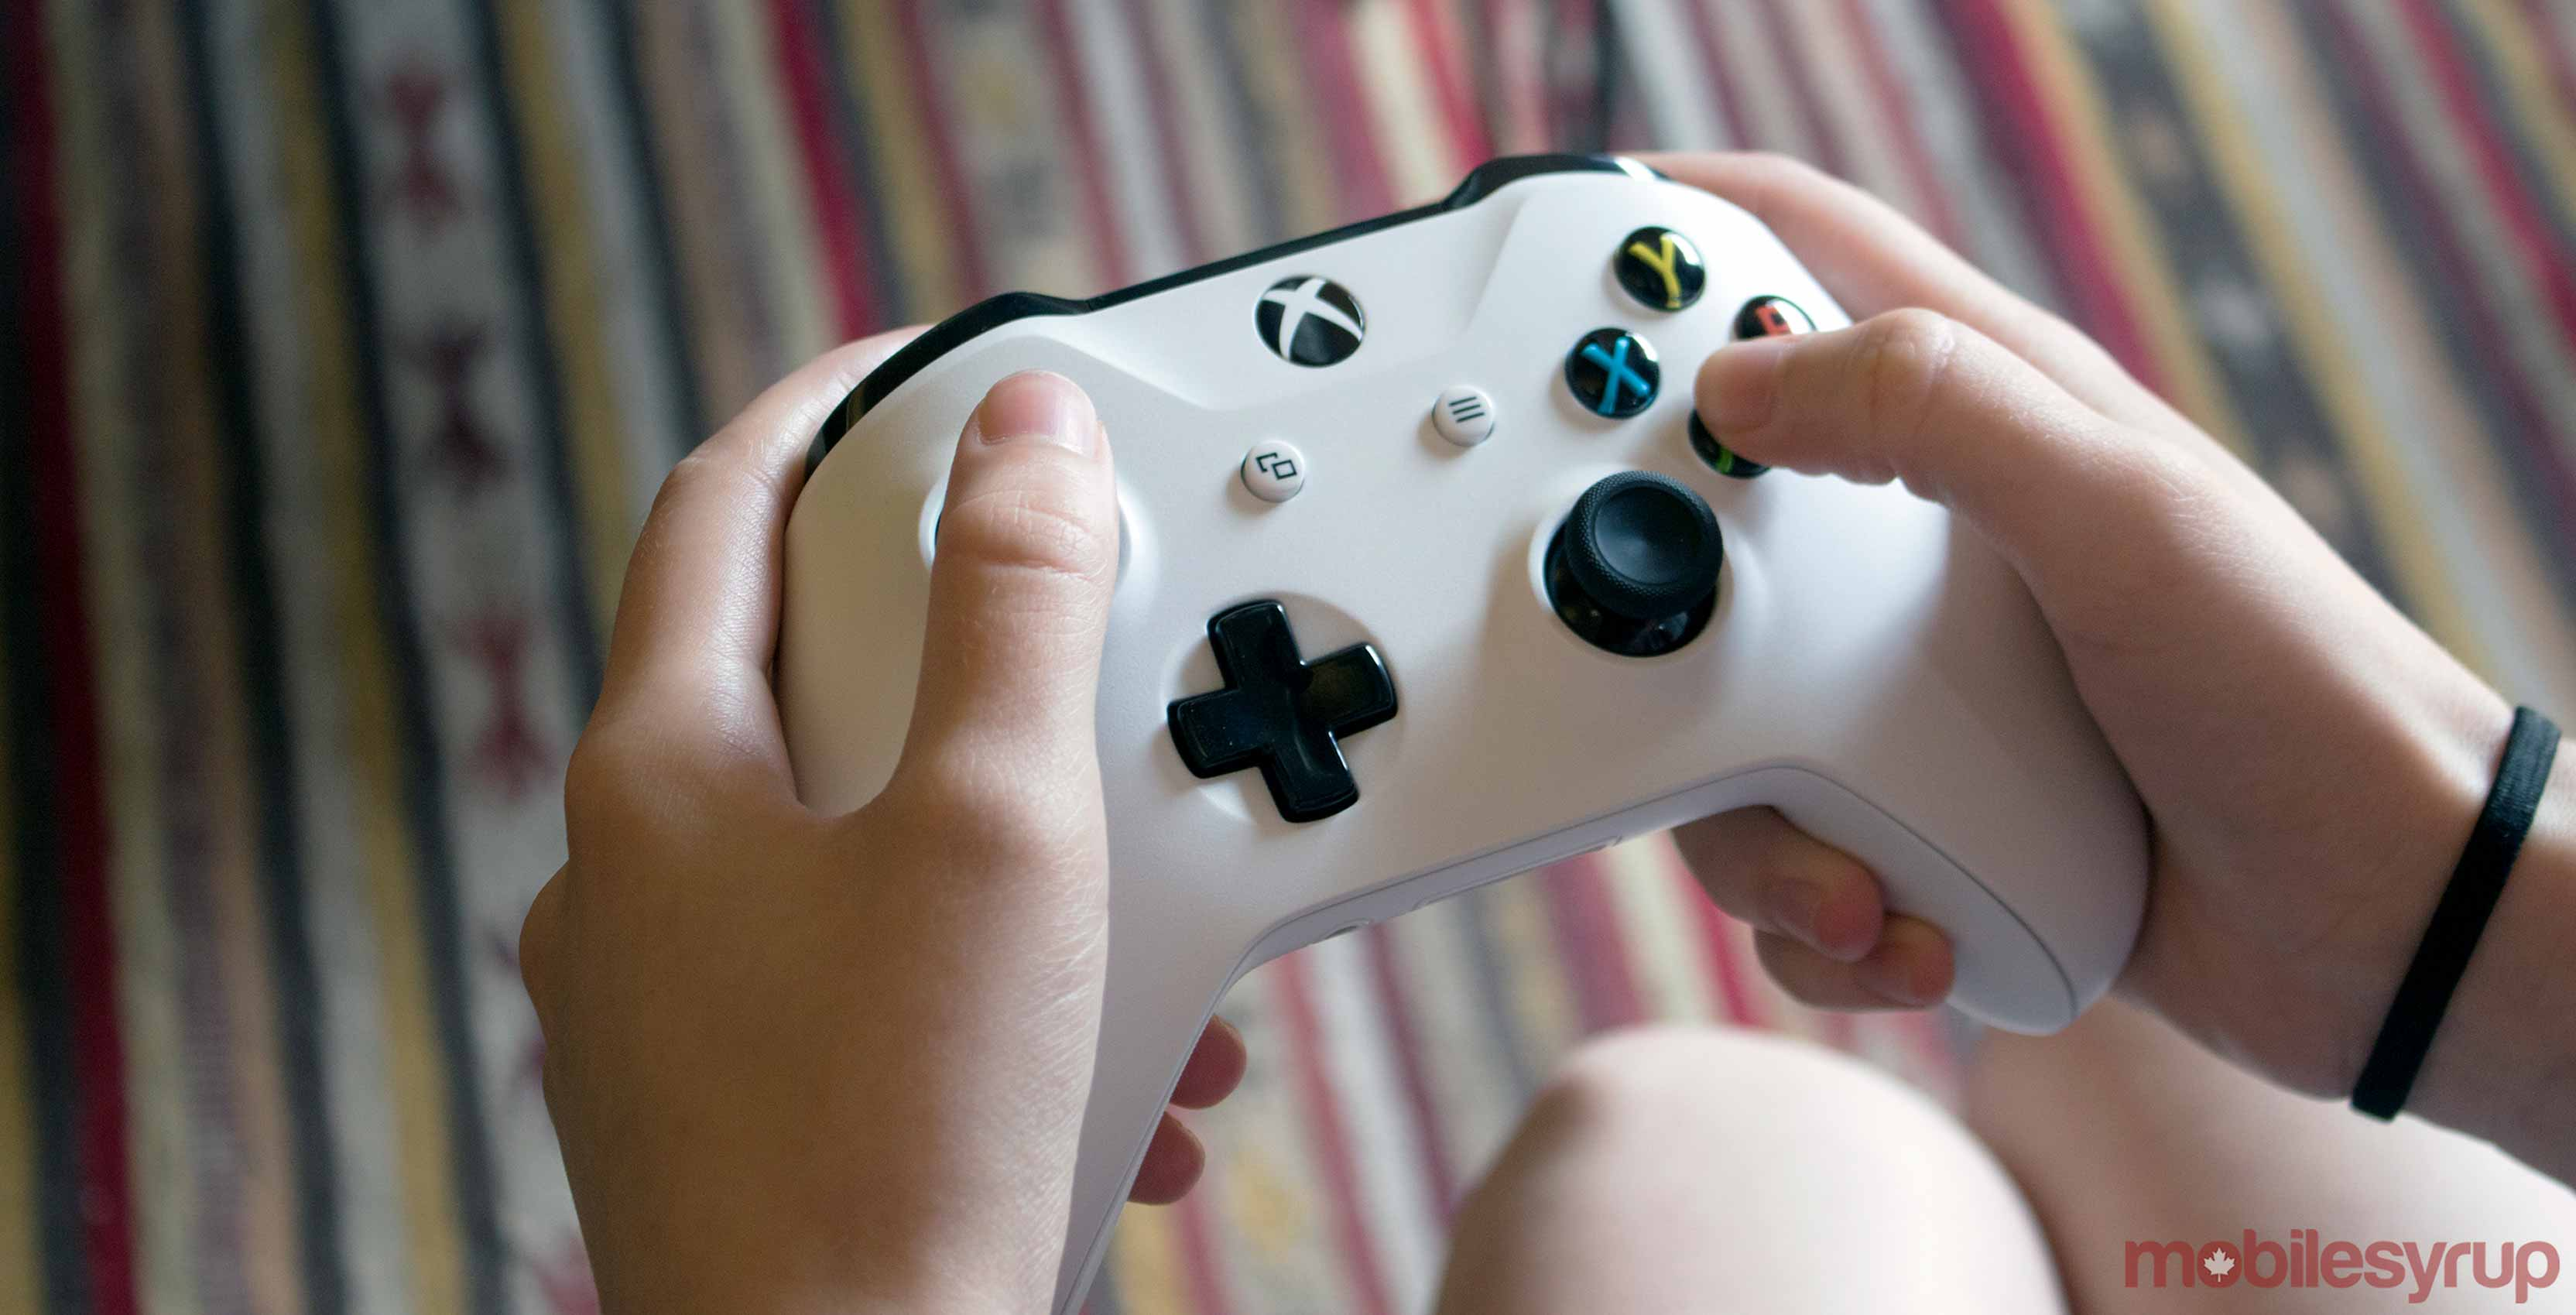 Xbox One controller in hand